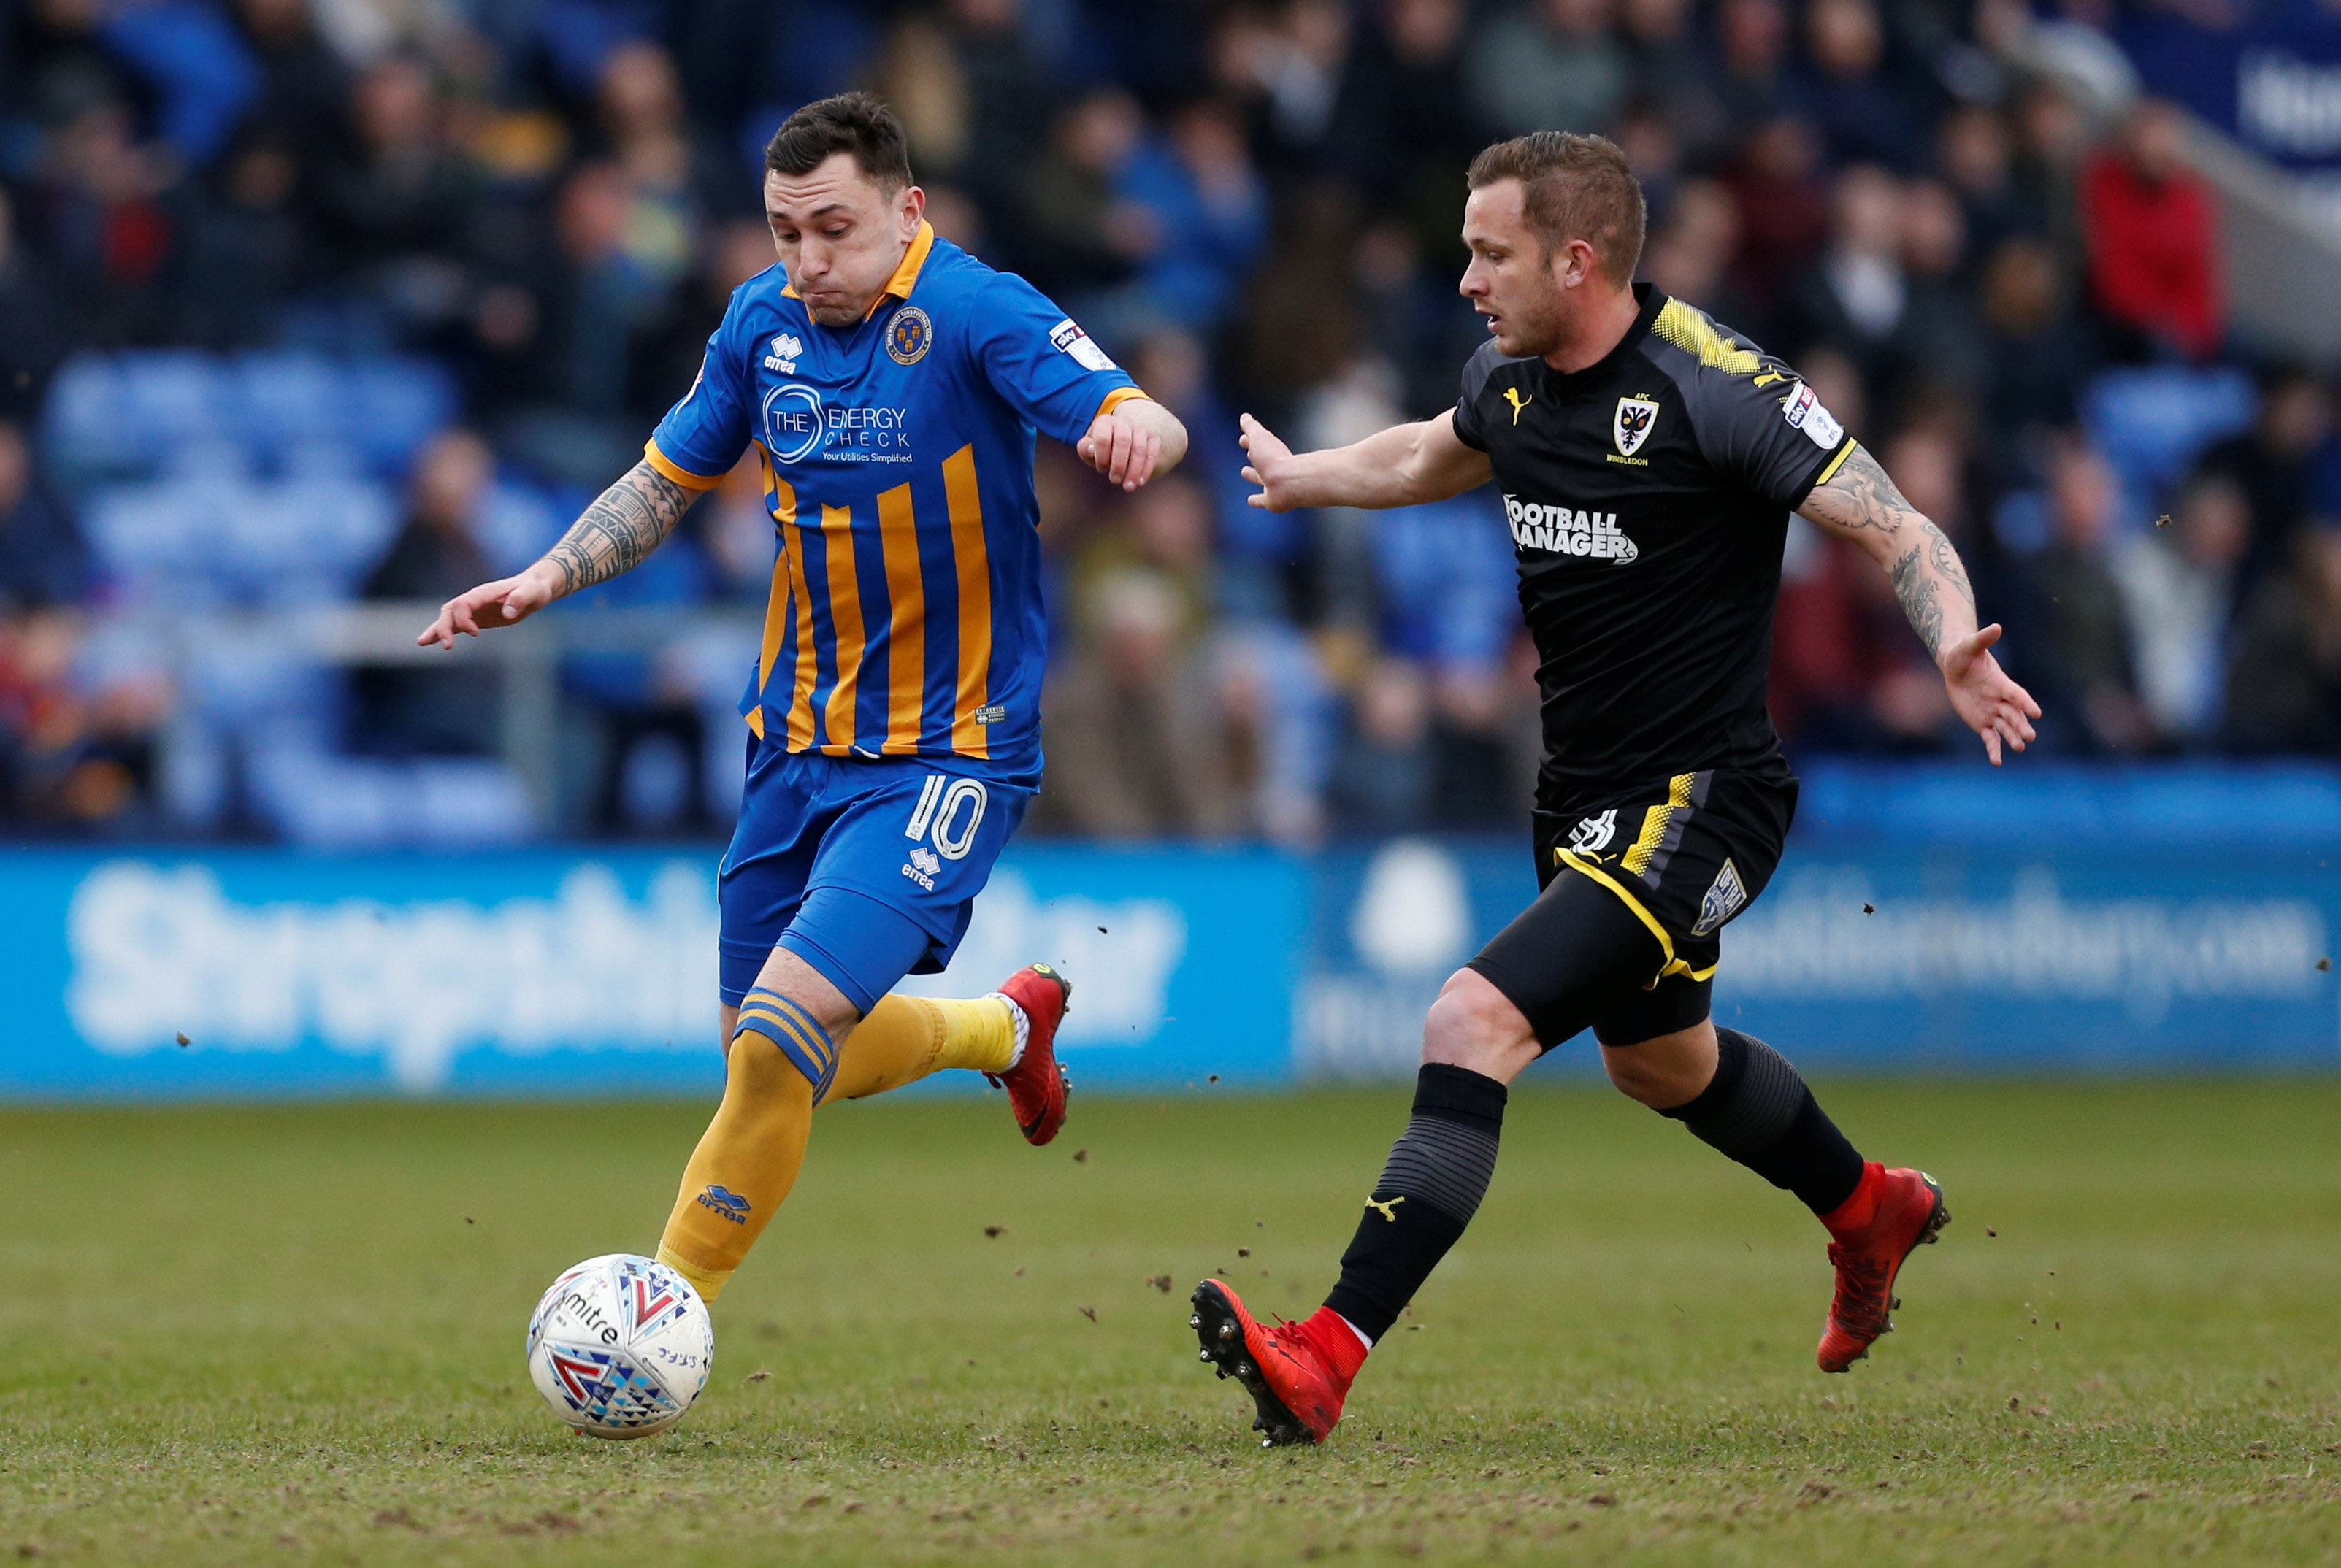 League One – Shrewsbury Town vs AFC Wimbledon